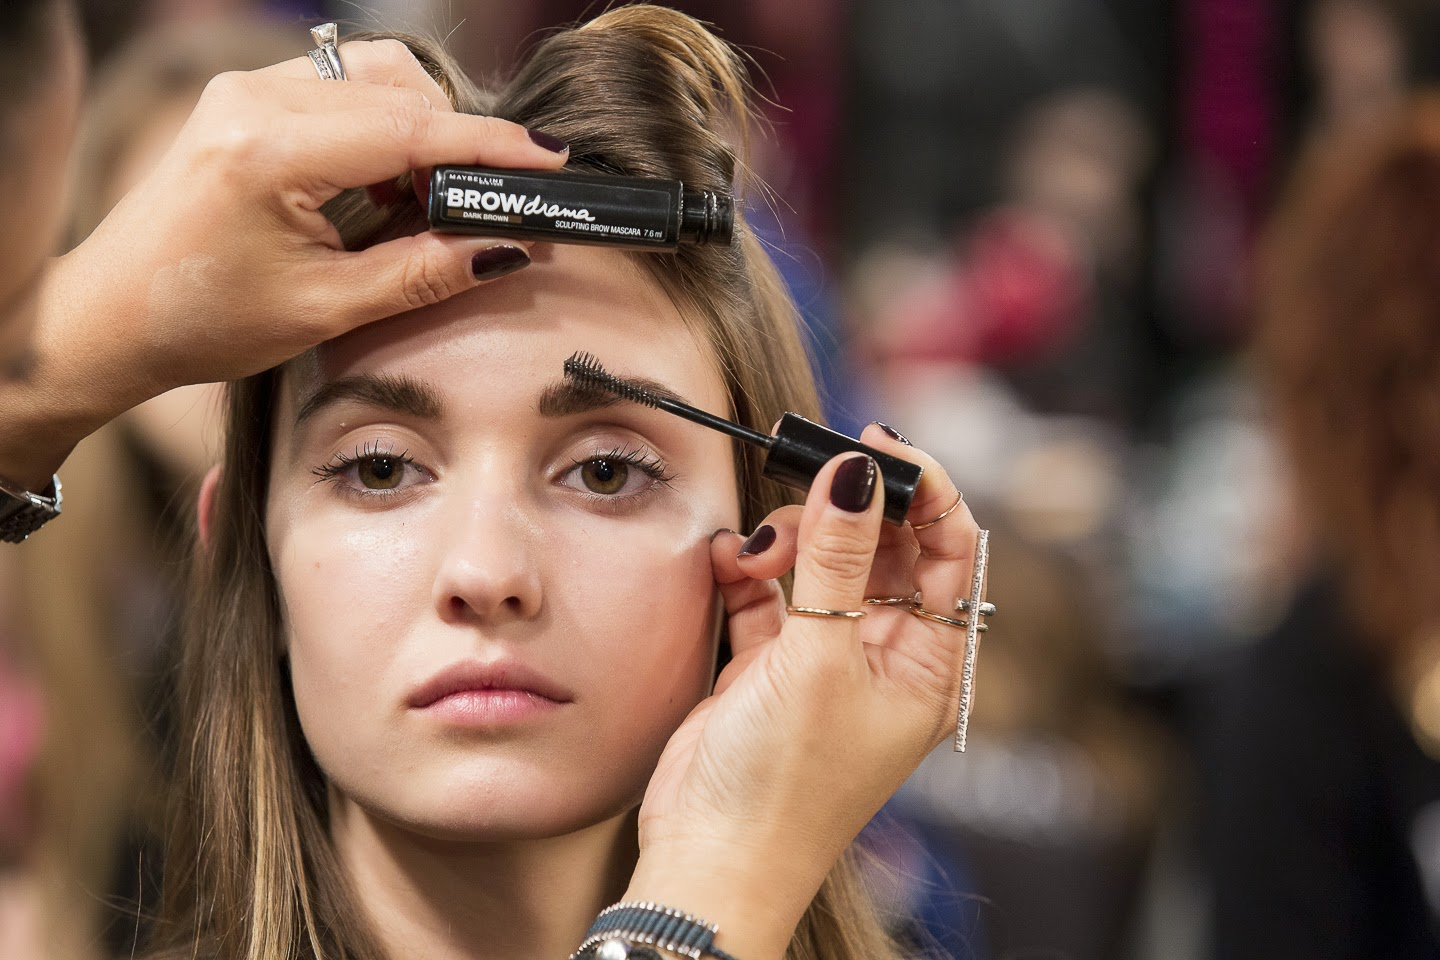 Melissa Nepton, WMCFW, Melissa Nepton S/S 2015, Maybelline, Beauty Look for Nepton, Products used on Melissa Nepton Models